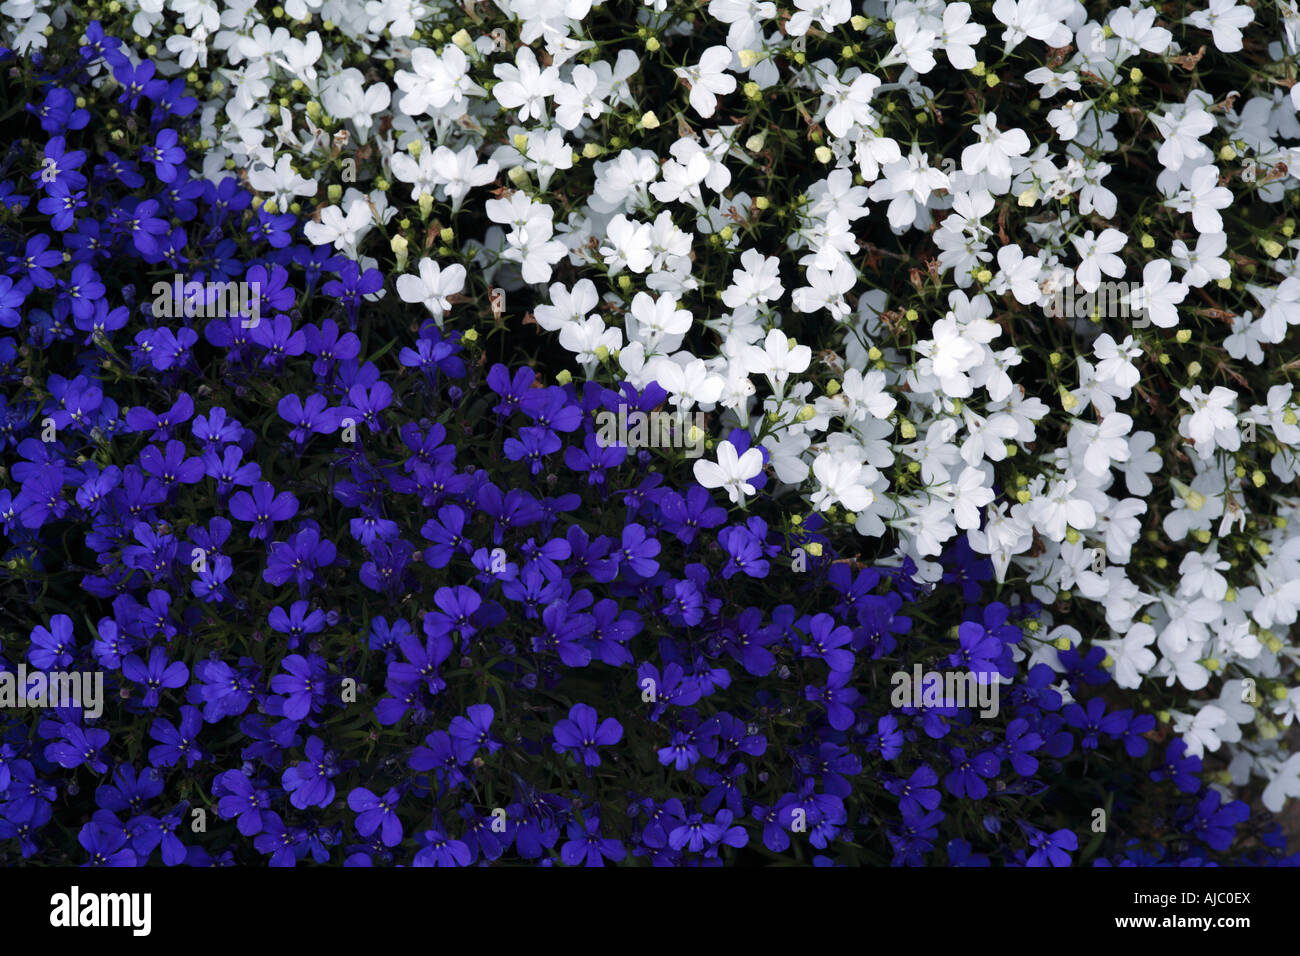 High Angle View Of A Field Of Blue And White Trailing Lobelia Hybrid